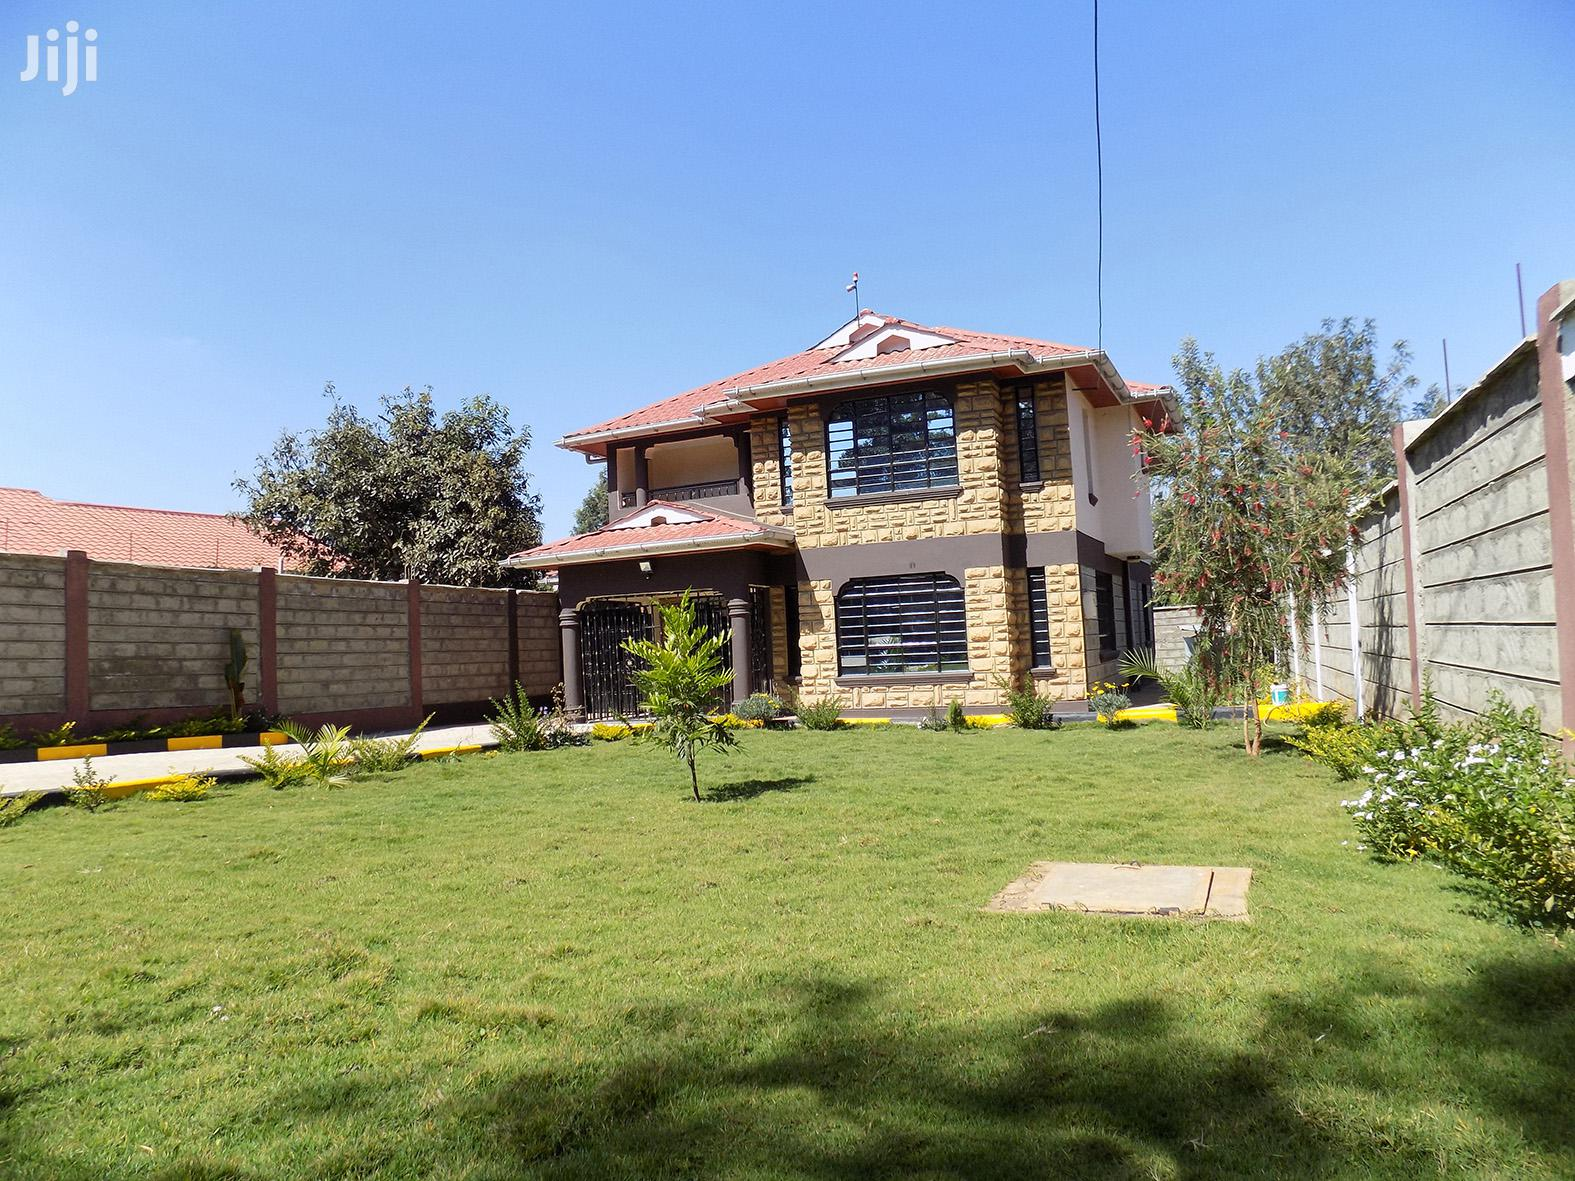 5 Bedrooms All En Suite Matasia | Houses & Apartments For Sale for sale in Ngong, Kajiado, Kenya